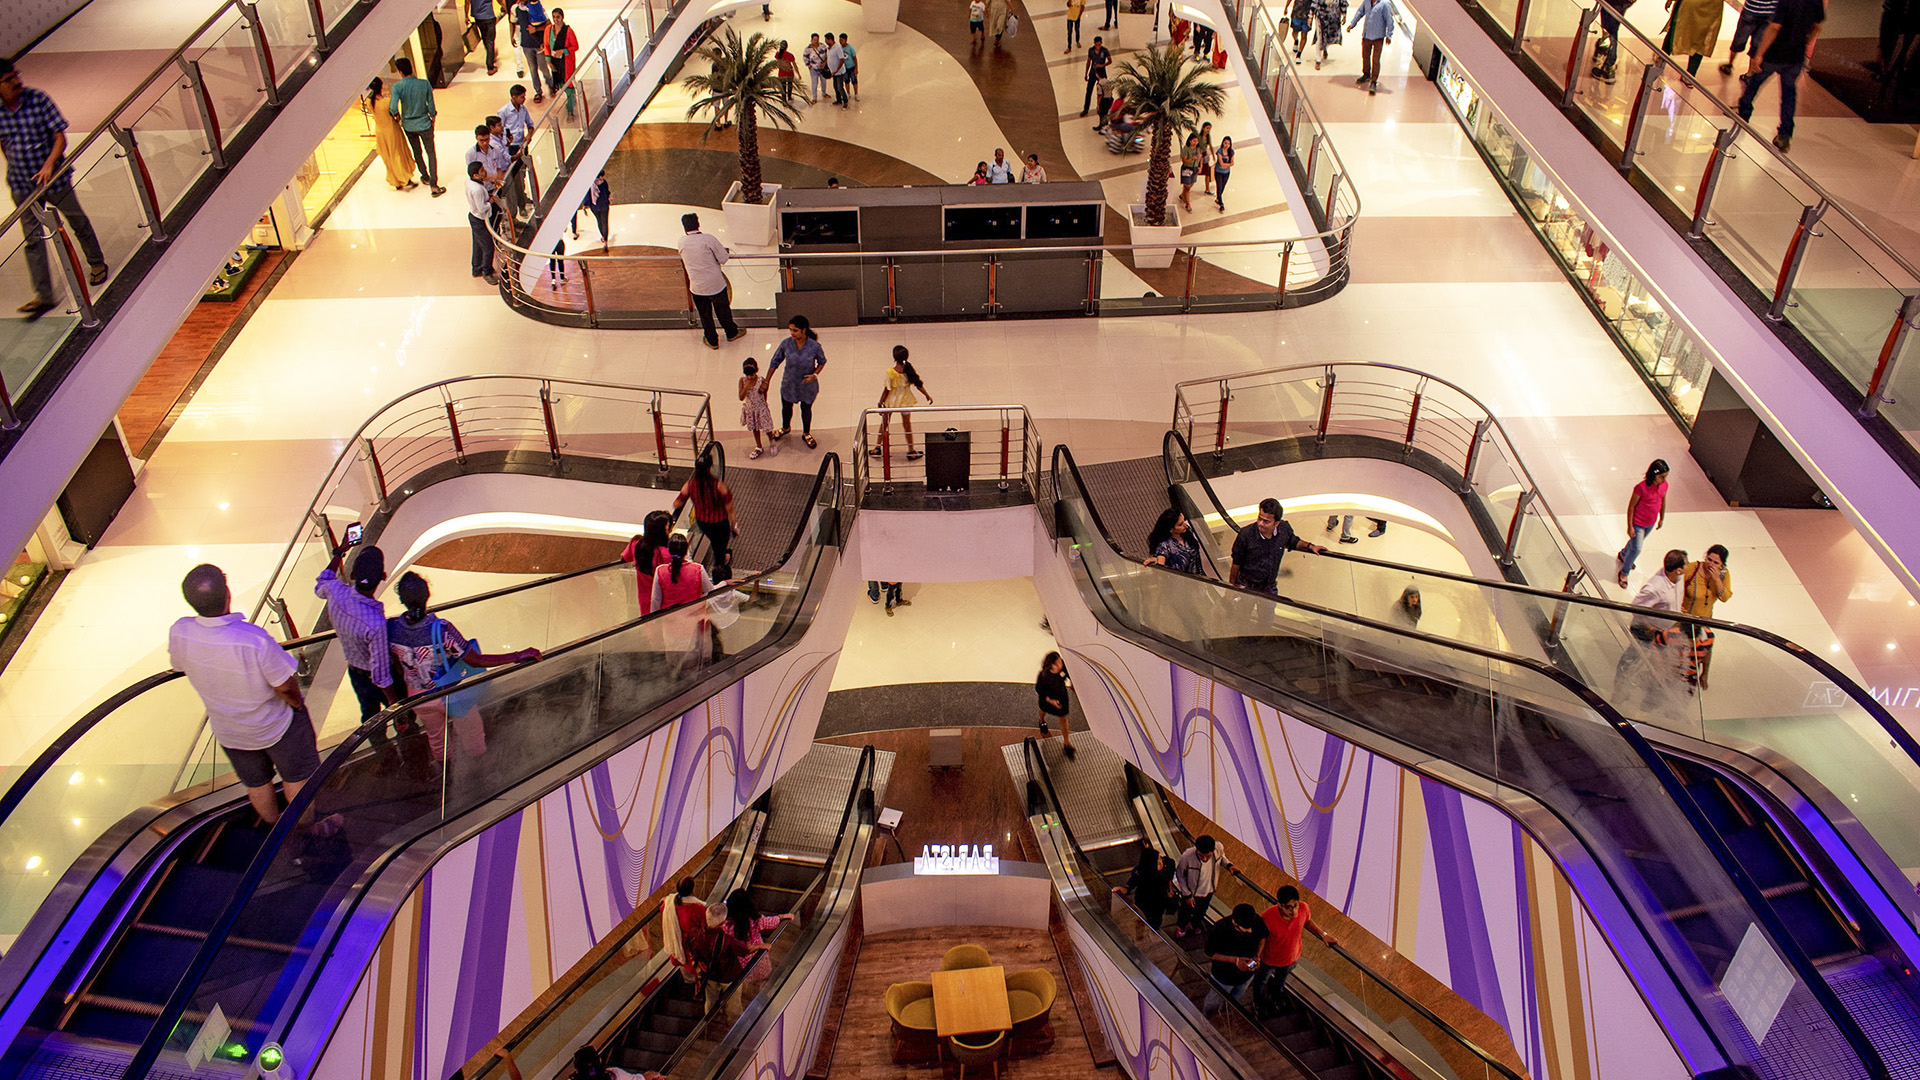 Indian Retailers Seek 'Therapy' As Covid-19 Second Wave Erases Recovery